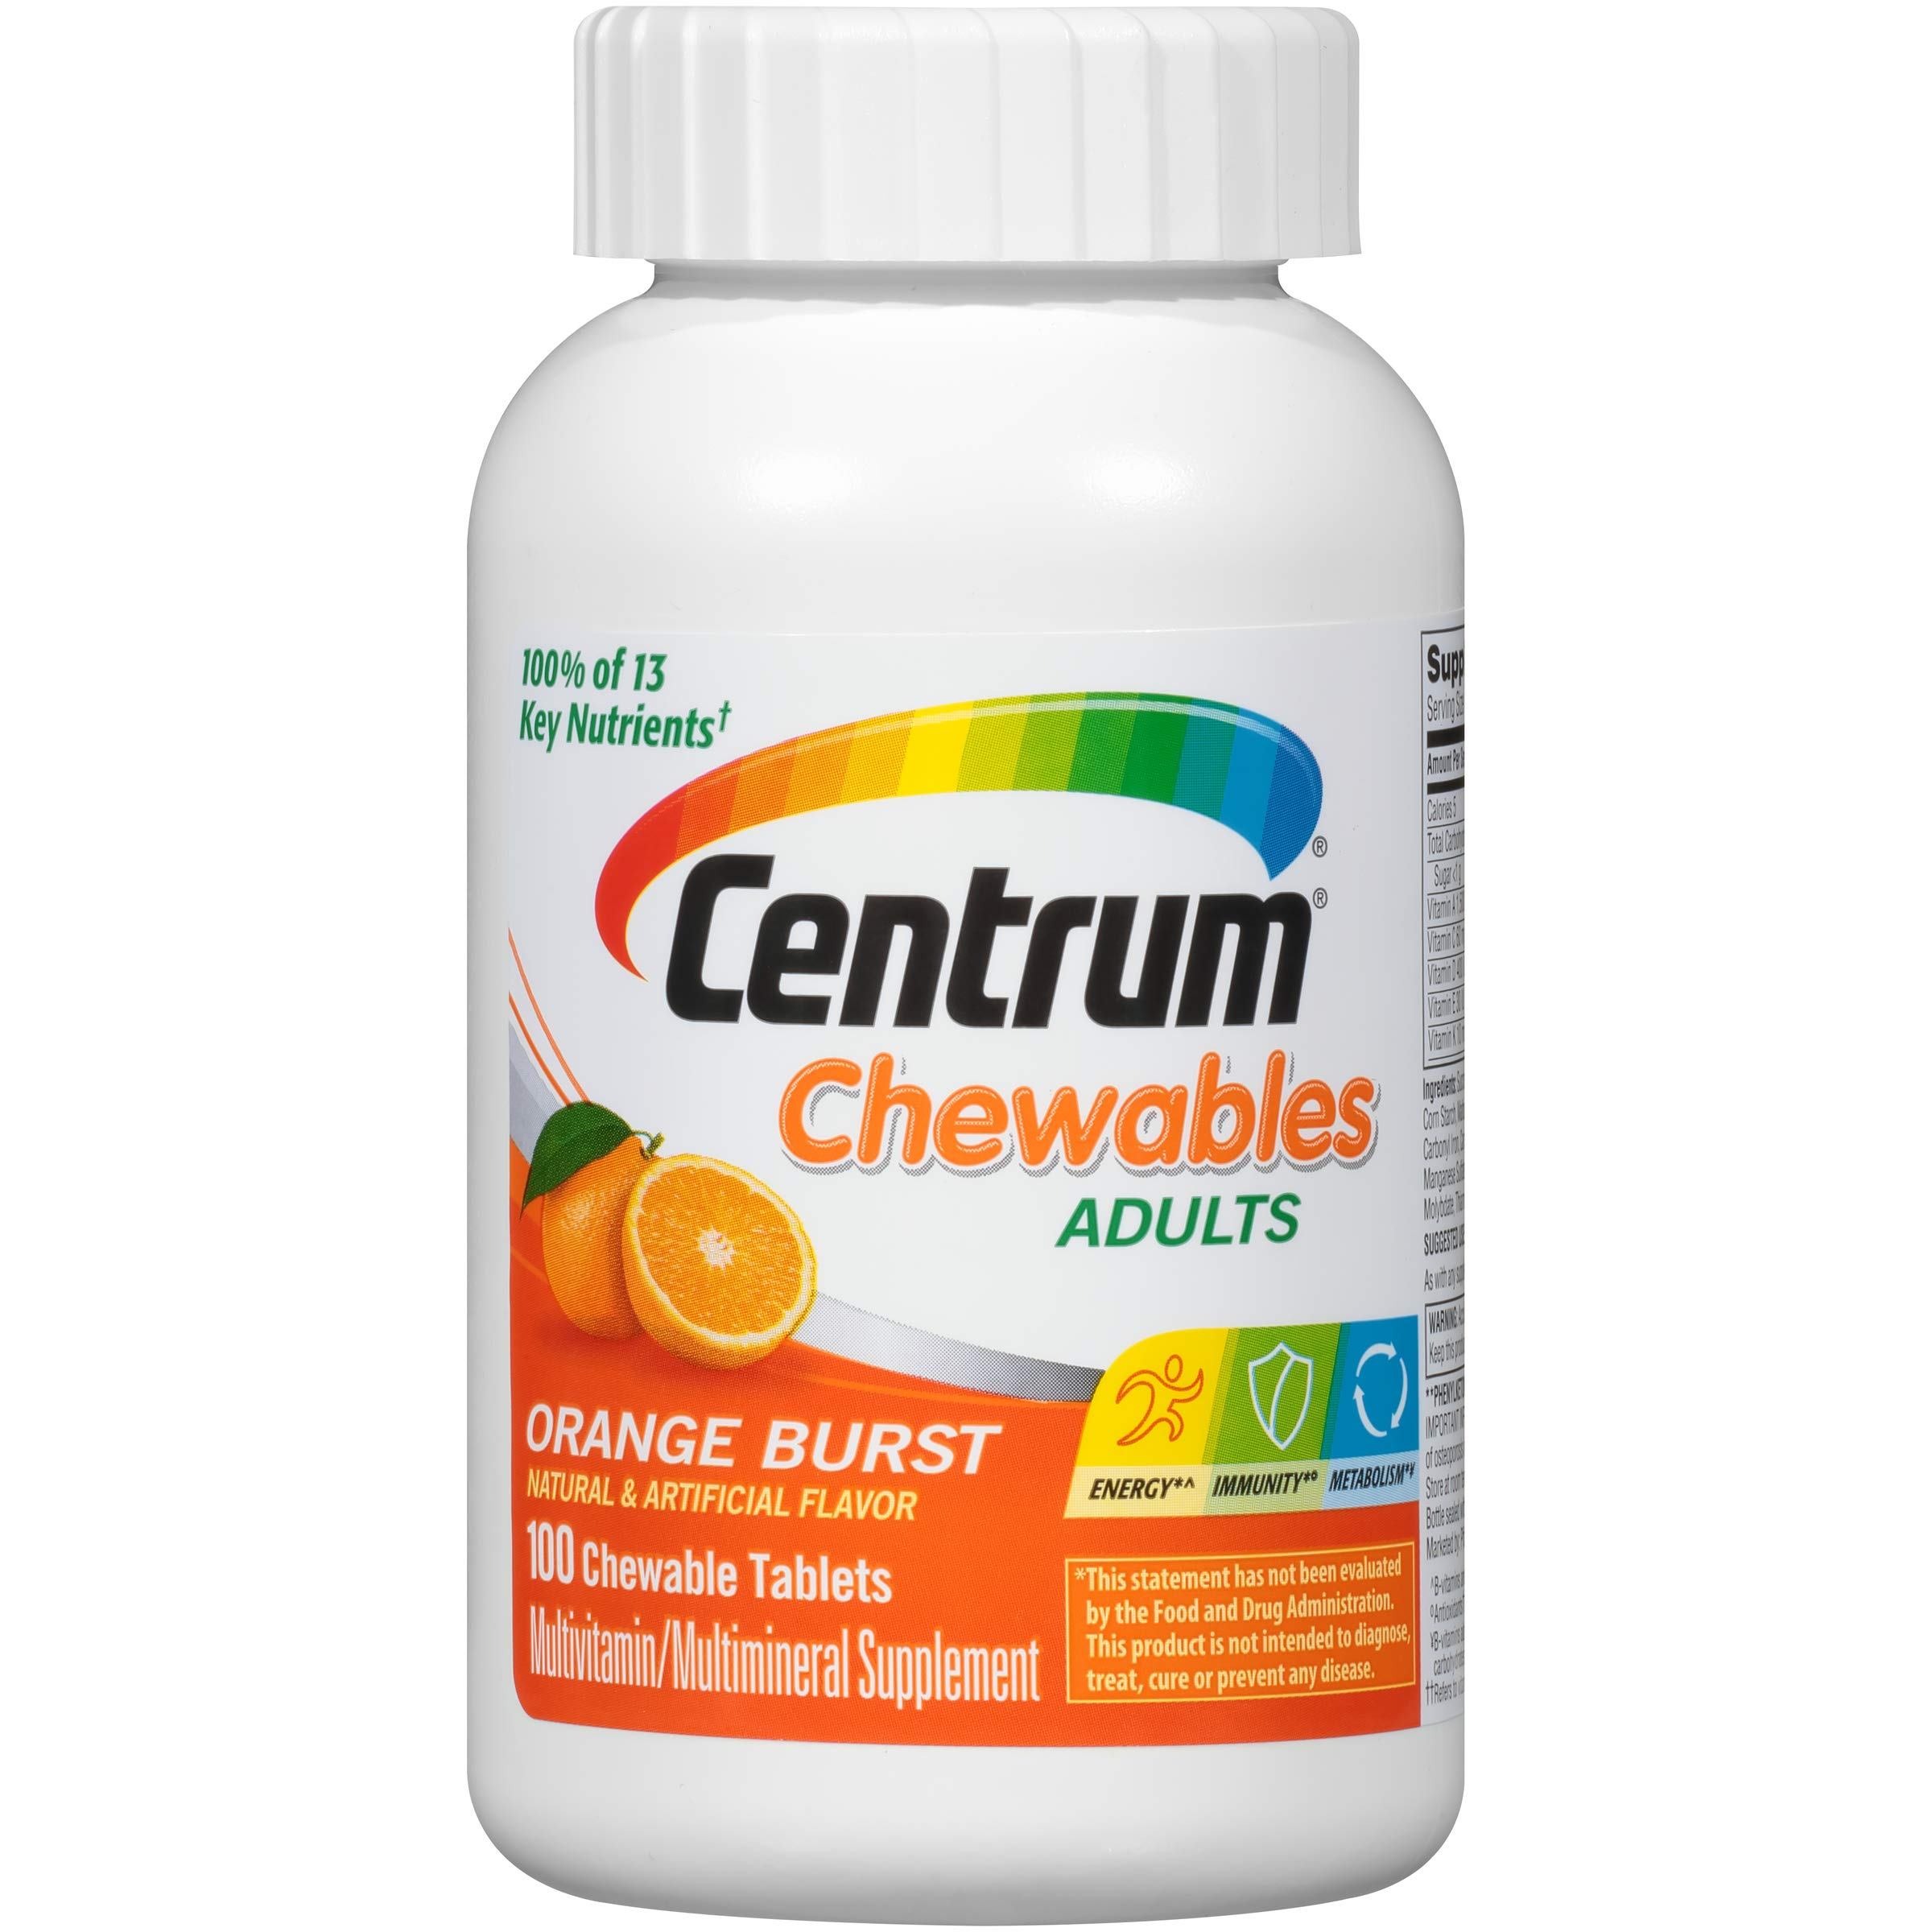 Centrum Chewable Multivitamin for Adults, Multivitamin/Multimineral Supplement with Vitamin C, D3, E and Antioxidants, Orange Burst Flavor - 100 Count + 2 Free Months of obé Fitness